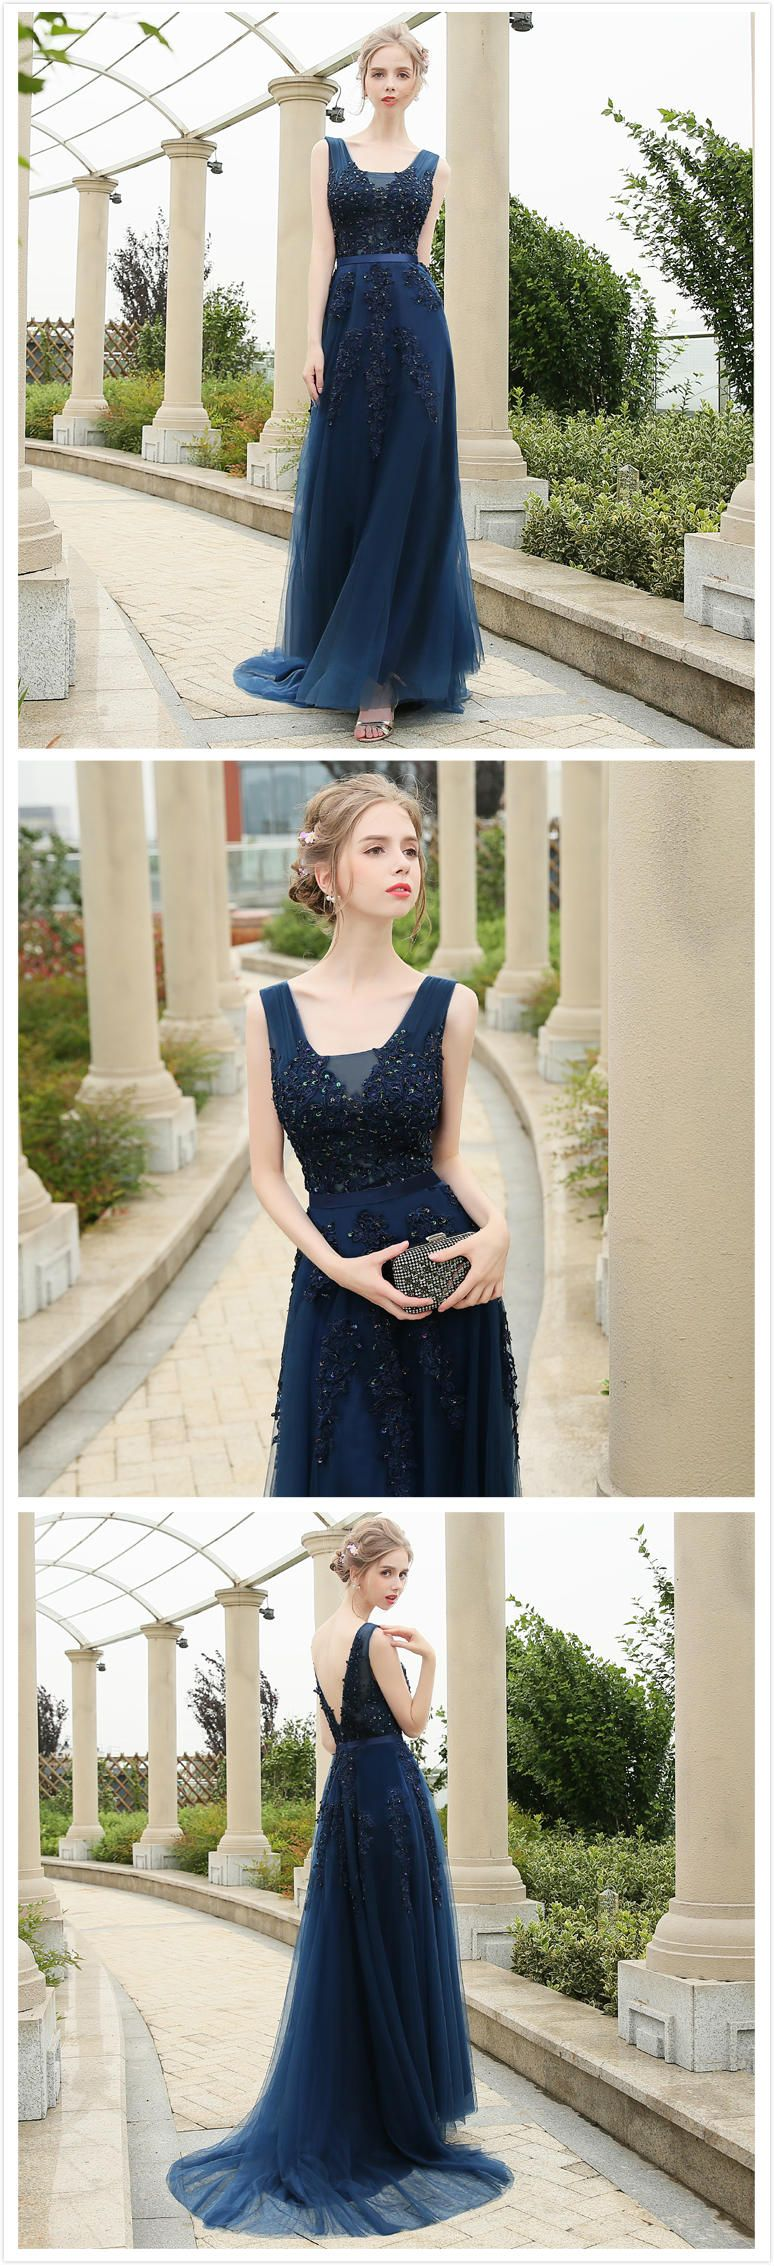 610d62cad85 Azbro Women s Floral Lace Paneled V Neck Slim Fit Prom Dress ...